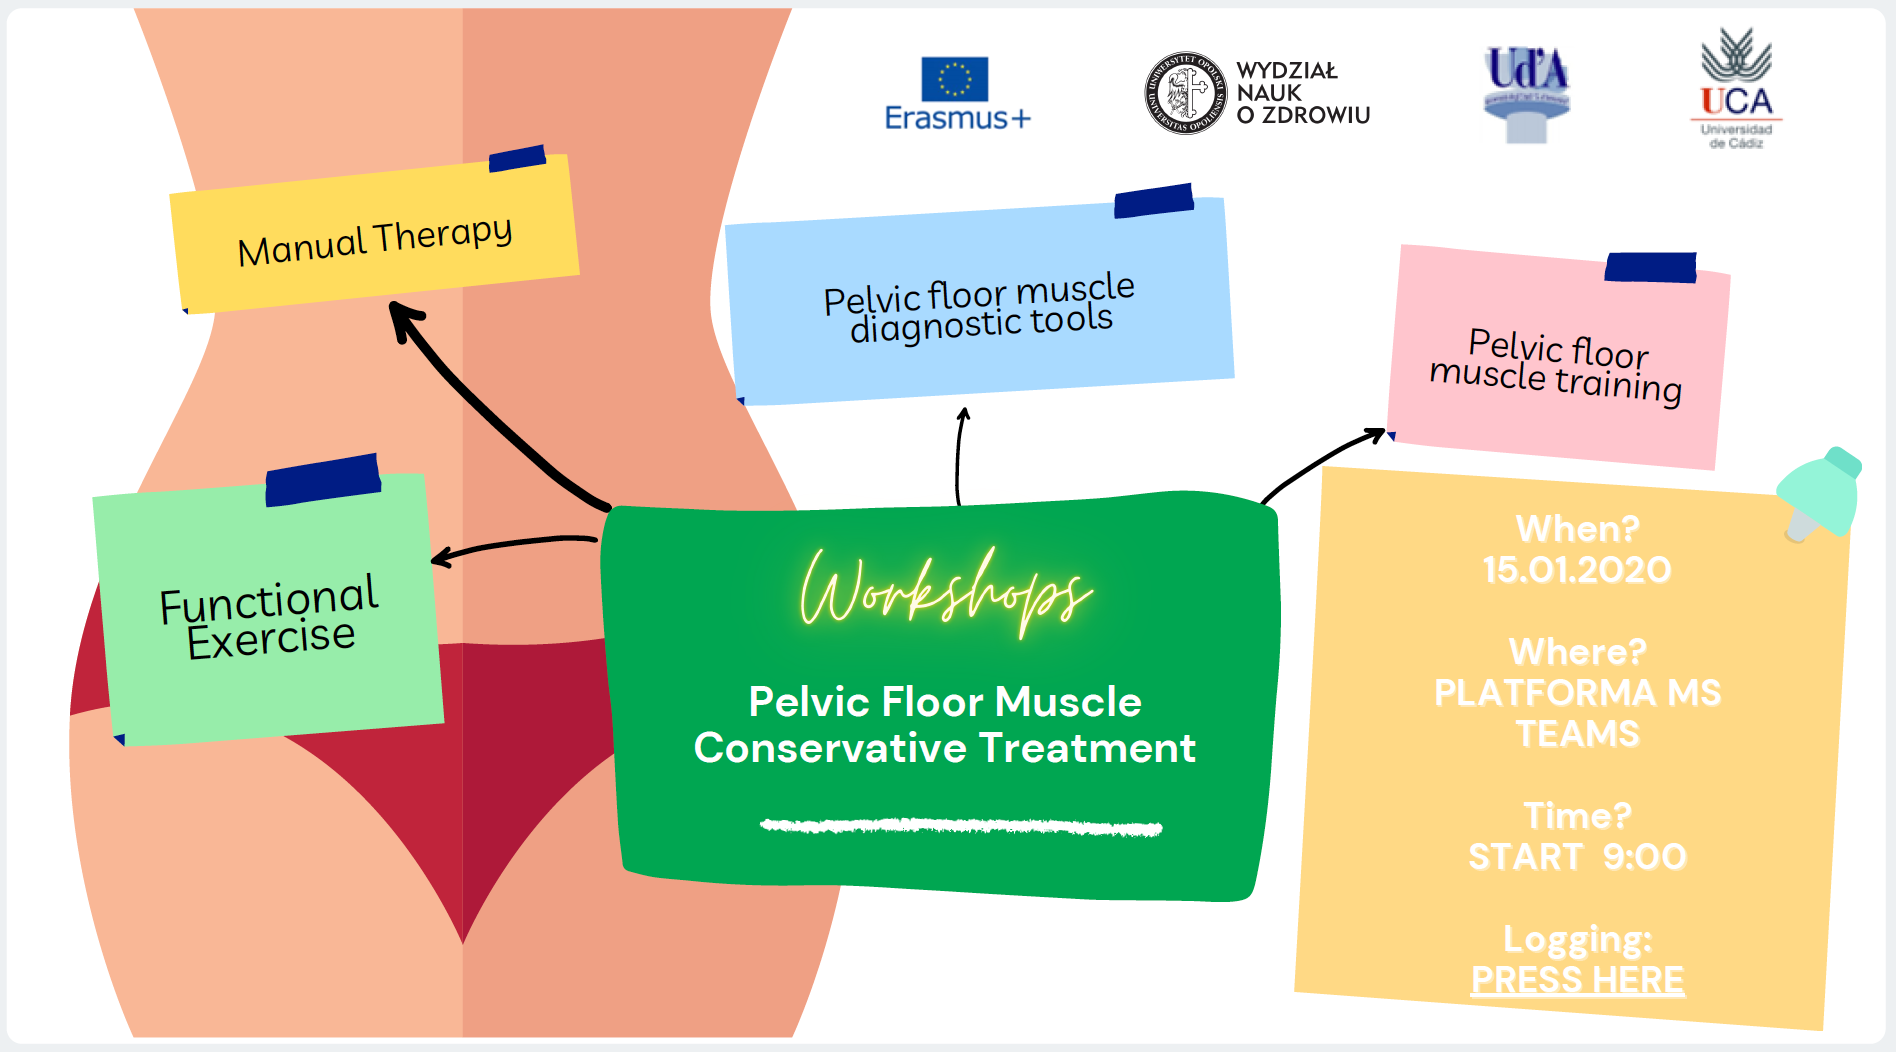 Workshop 'Pelvic Floor Muscle Conservative Treatment""